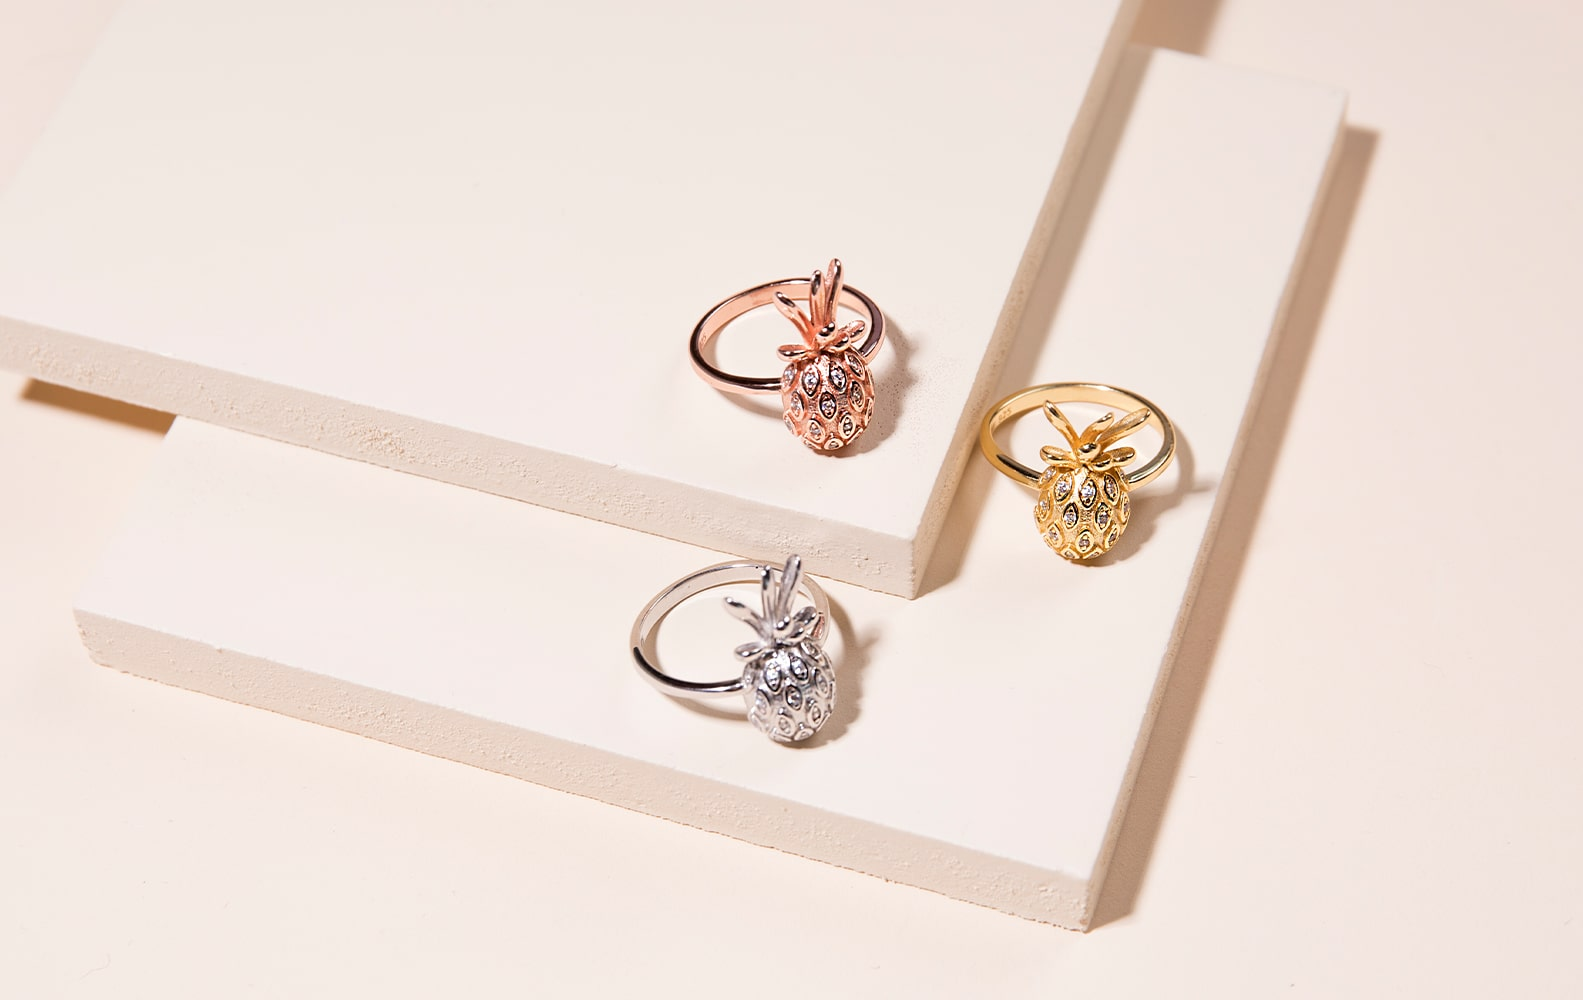 NOGU Summer Pineapple Dainty Rings (Rose Gold, Silver, Gold Vermeil with CZ Diamonds)